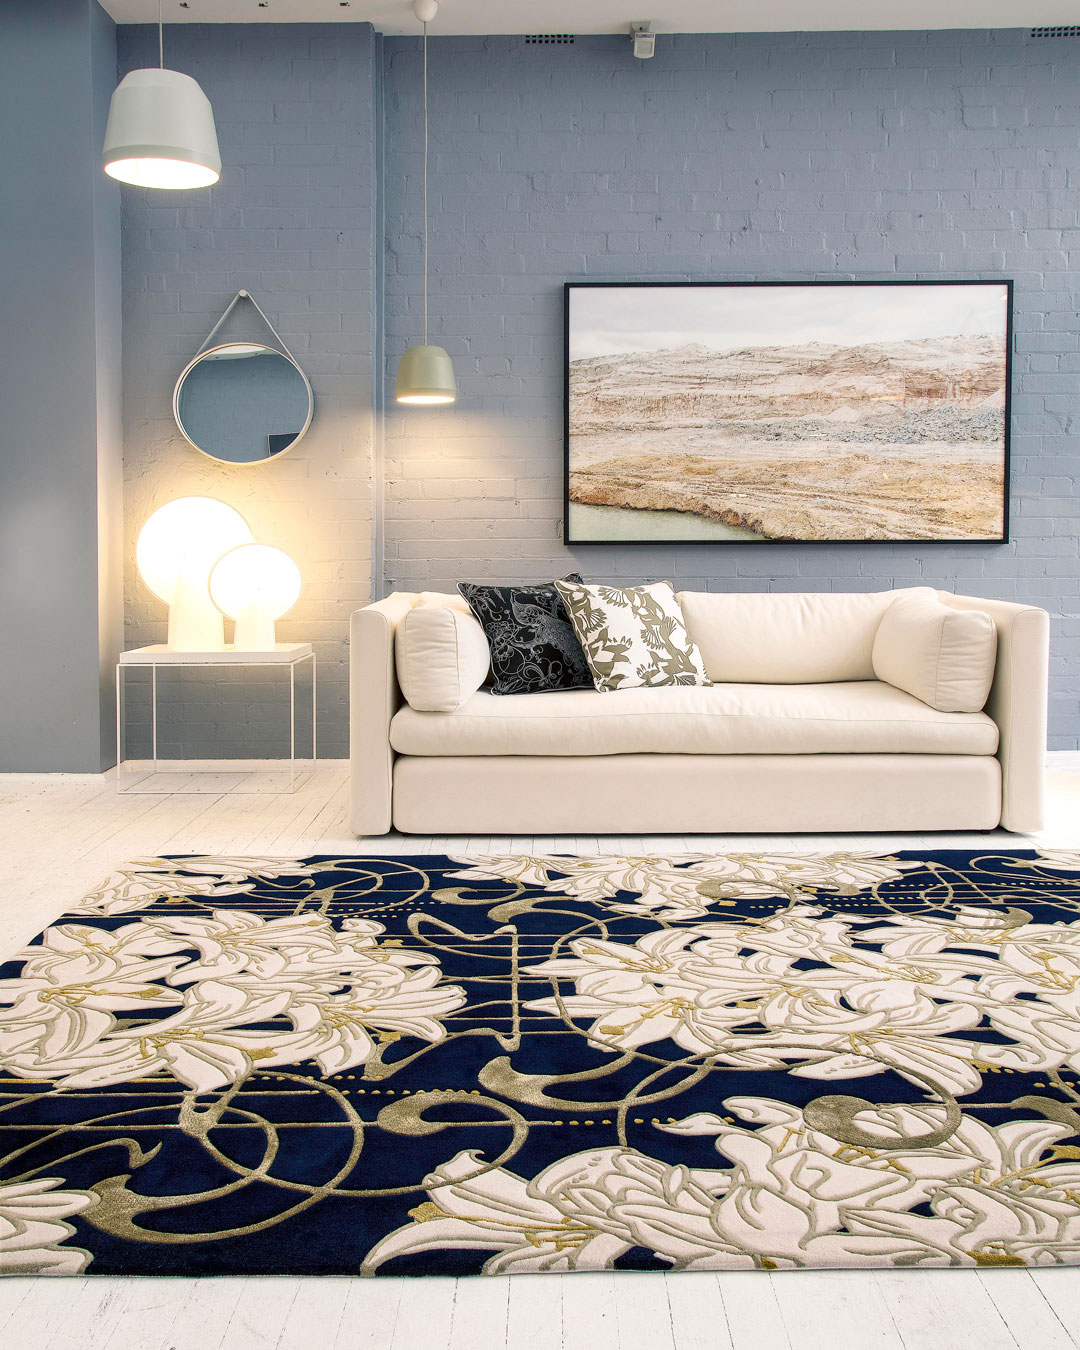 Living room image of art nouveau Lily Nouveau rug by Kingdom Home in gold colour